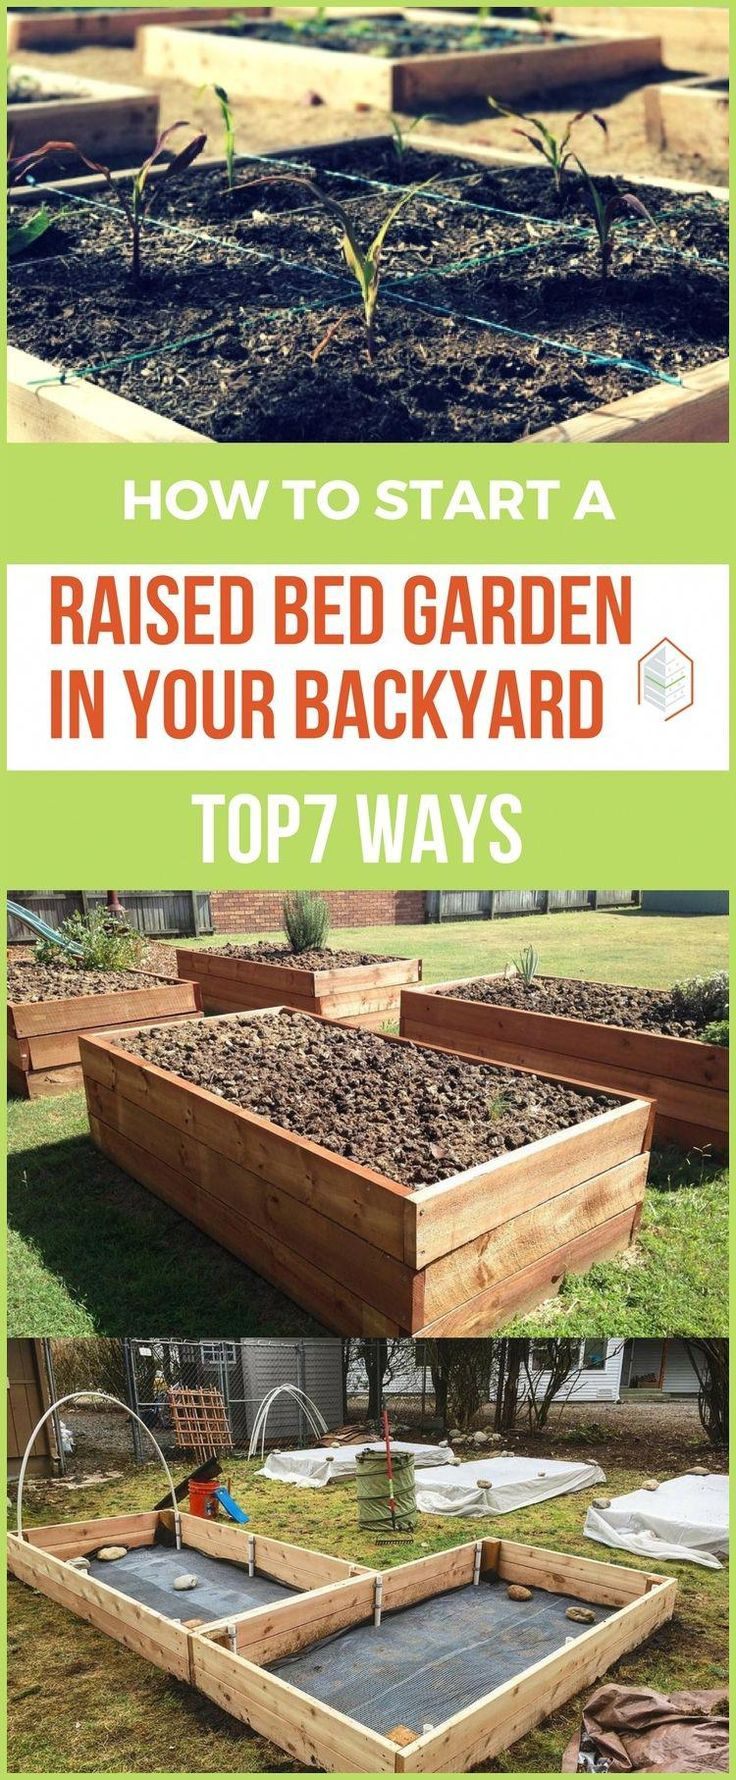 How to Start a Raised Bed Garden in Your Backyard: Top 7 Ways. If you love gardening, you may often wonder how to start a raised bed garden in your backyard to protect your plants from weeds and pests. #urbangardening #urbanfarming #gardening #diy #garden